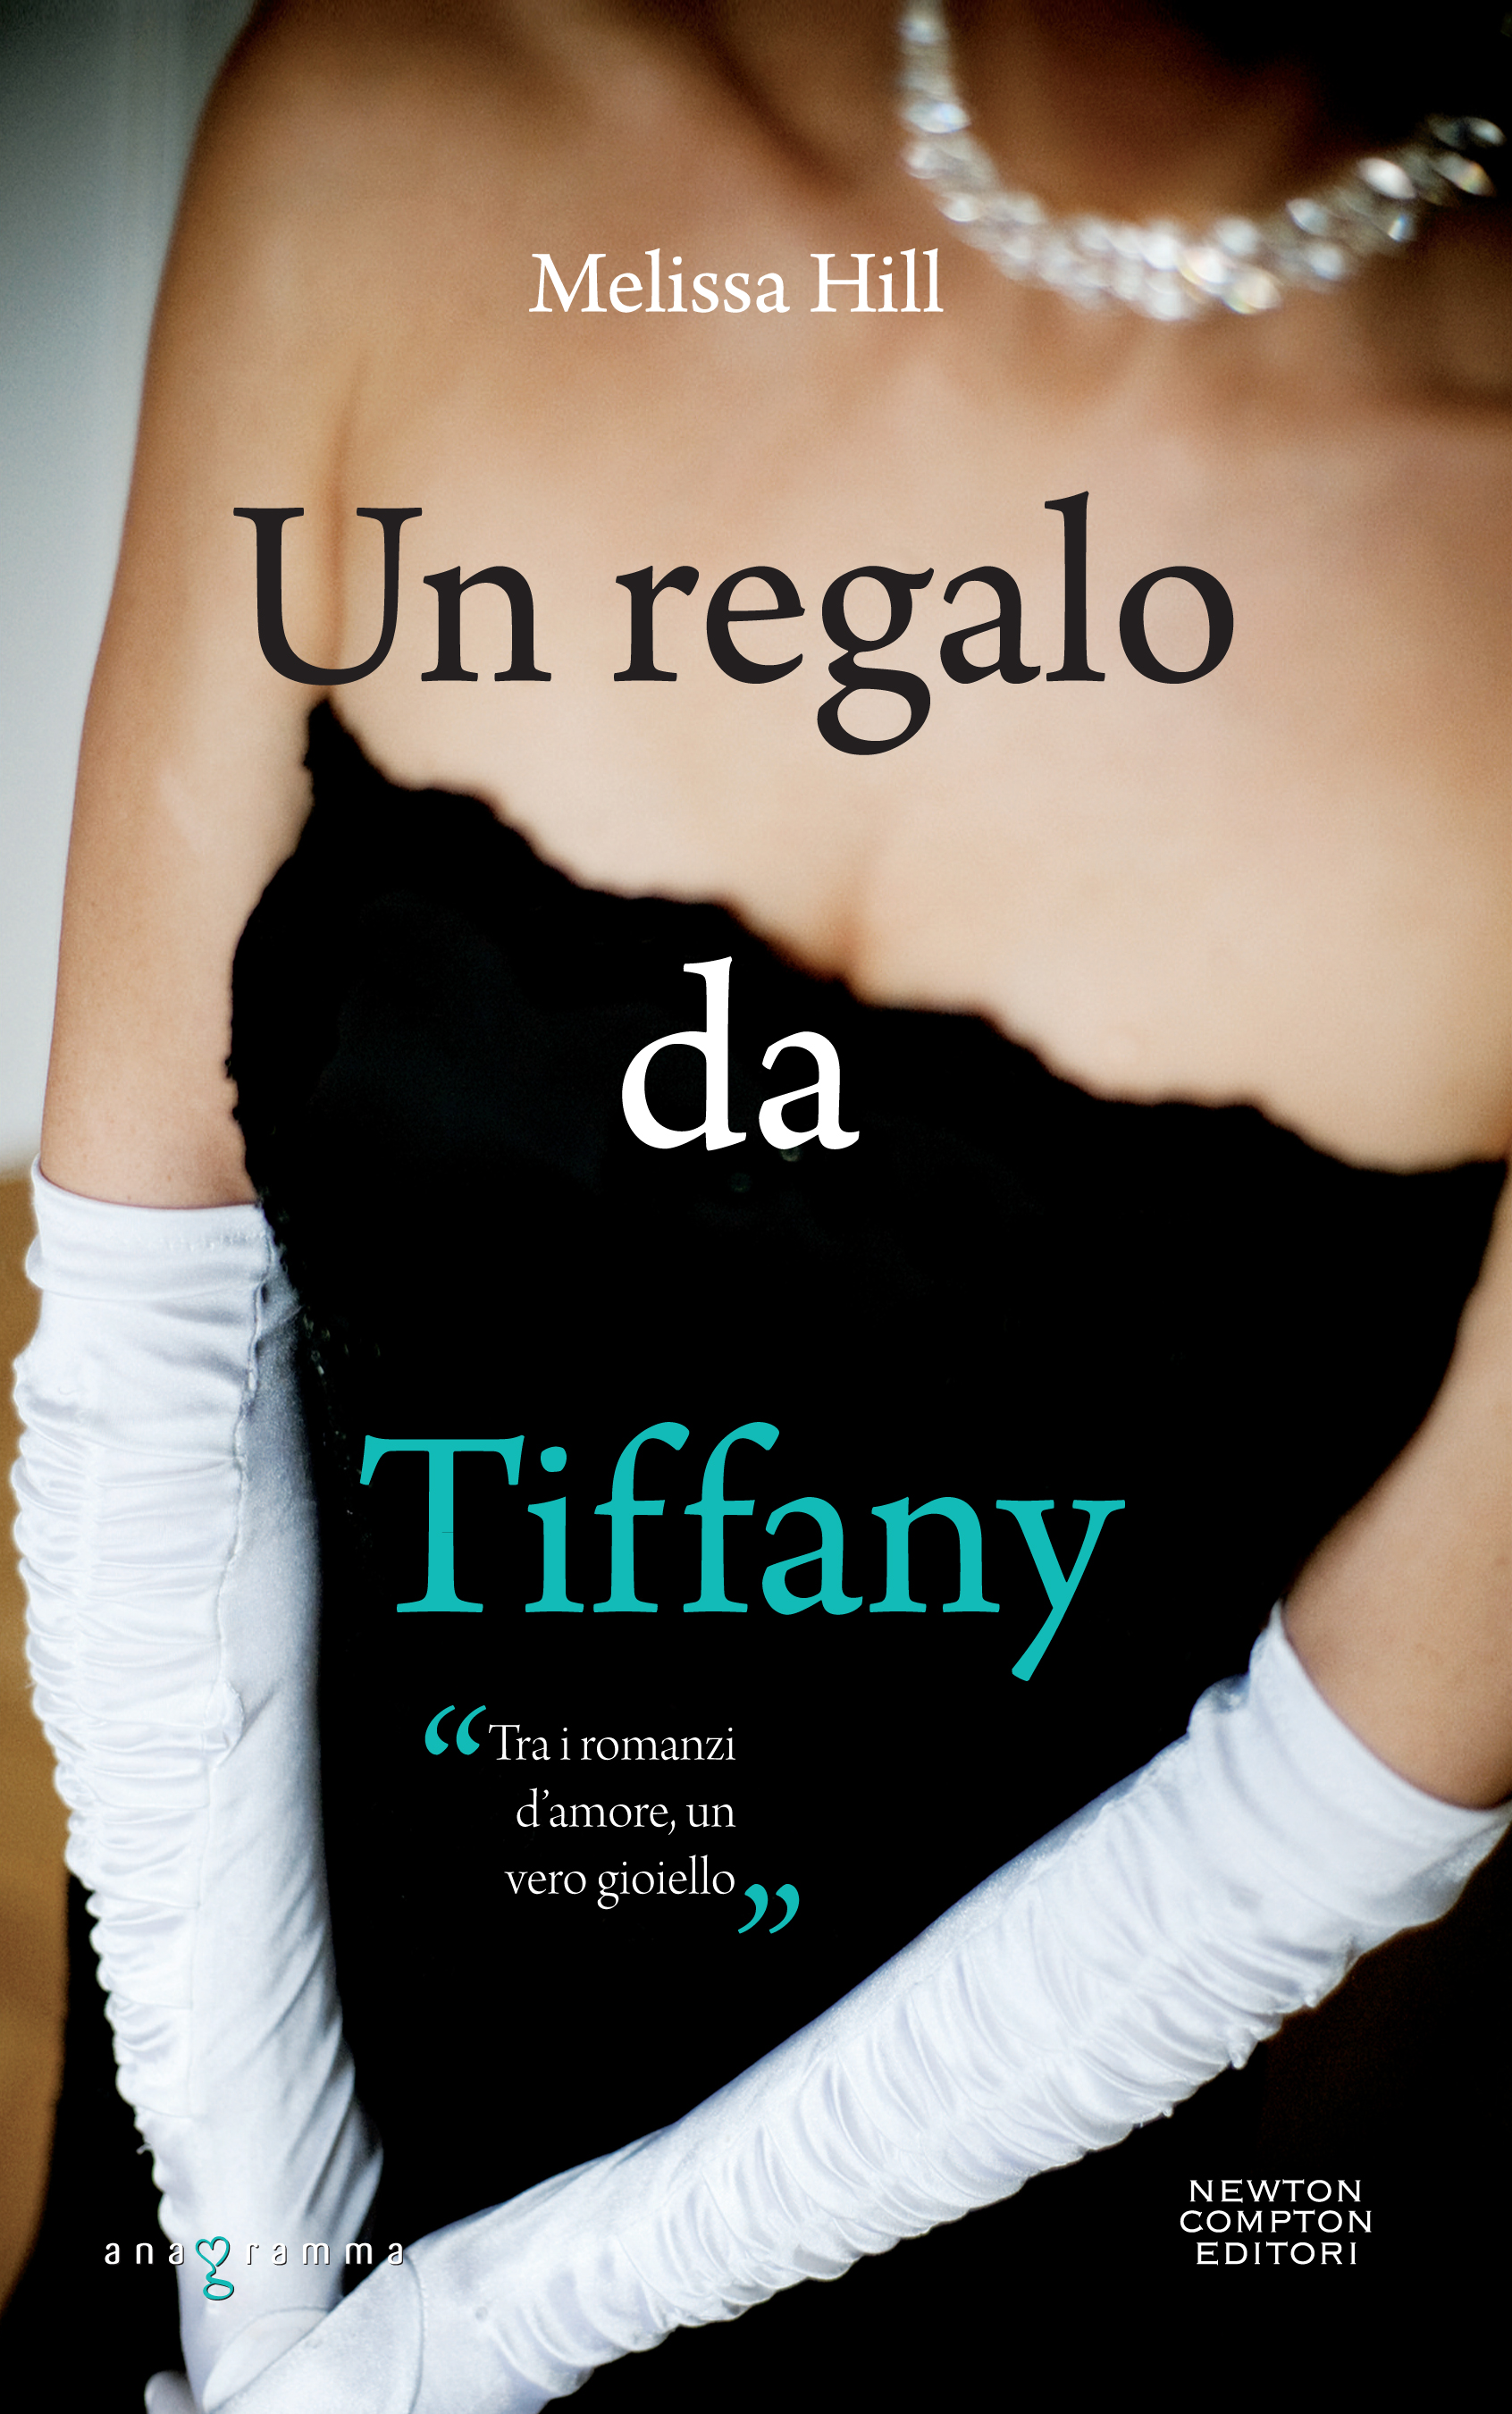 http://www.amazon.it/Un-regalo-Tiffany-Melissa-Hill/dp/8854133027/ref=sr_1_1_twi_1_har?s=books&ie=UTF8&qid=1435753961&sr=1-1&keywords=un+regalo+da+tiffany